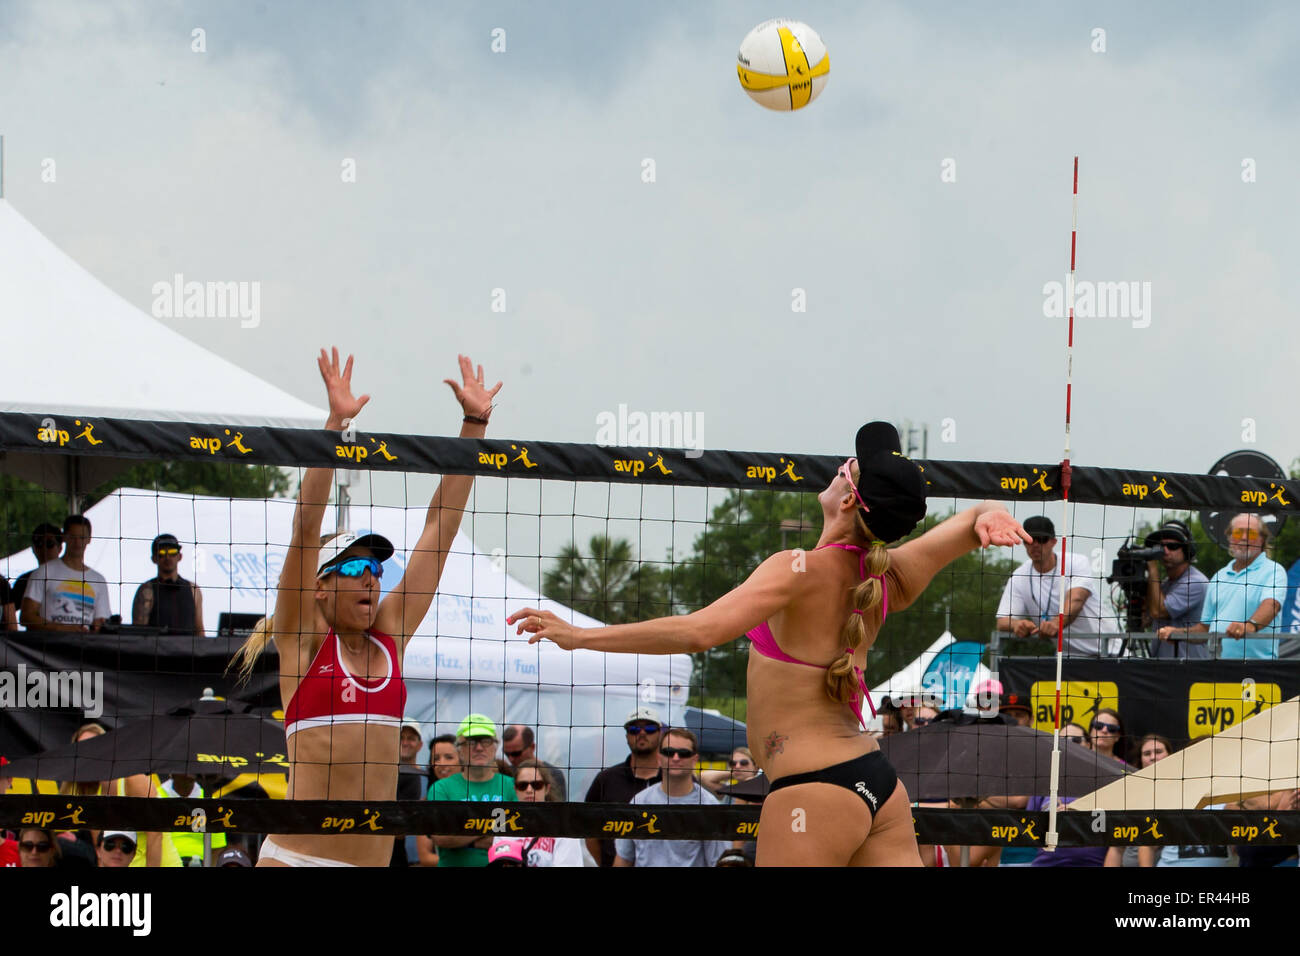 May 24, 2015 - Jennifer Kessy spikes the ball during the AVP New Orleans Open at Lake Pontchartrain in Kenner, LA. - Stock Image